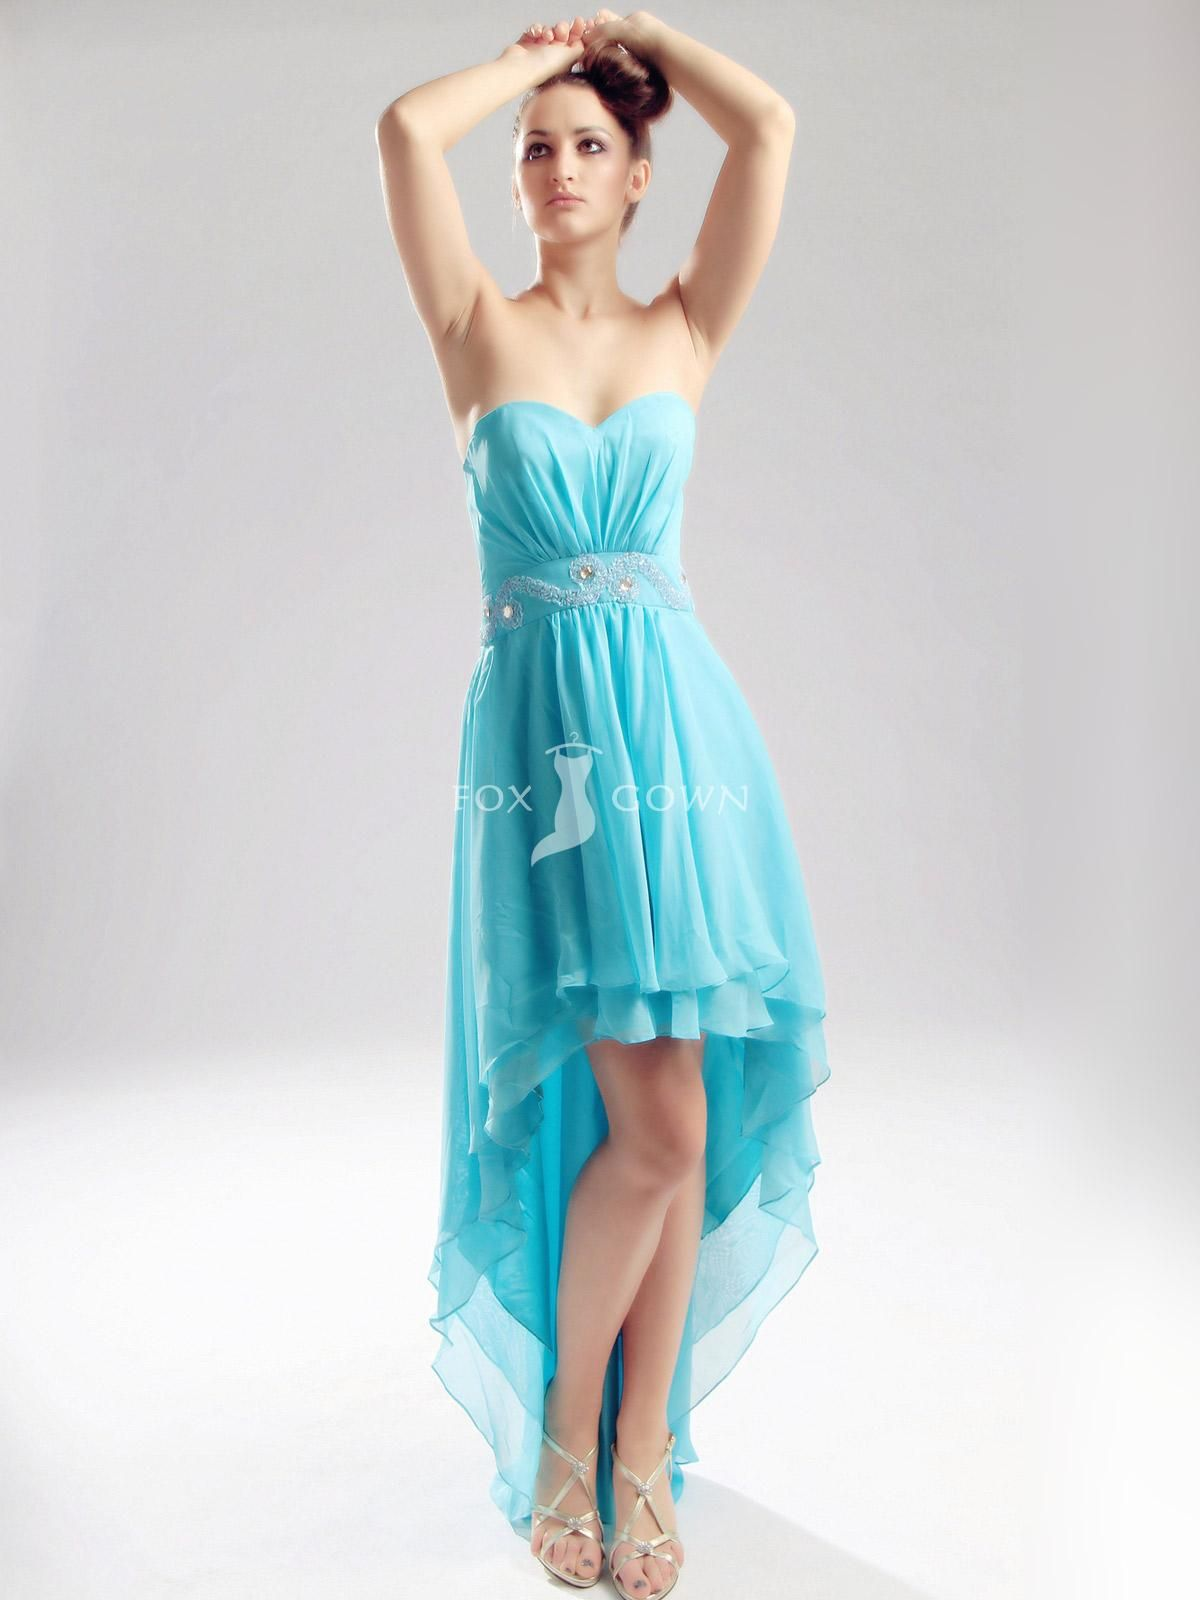 78 Best images about Dress Amie on Pinterest  A line One ...